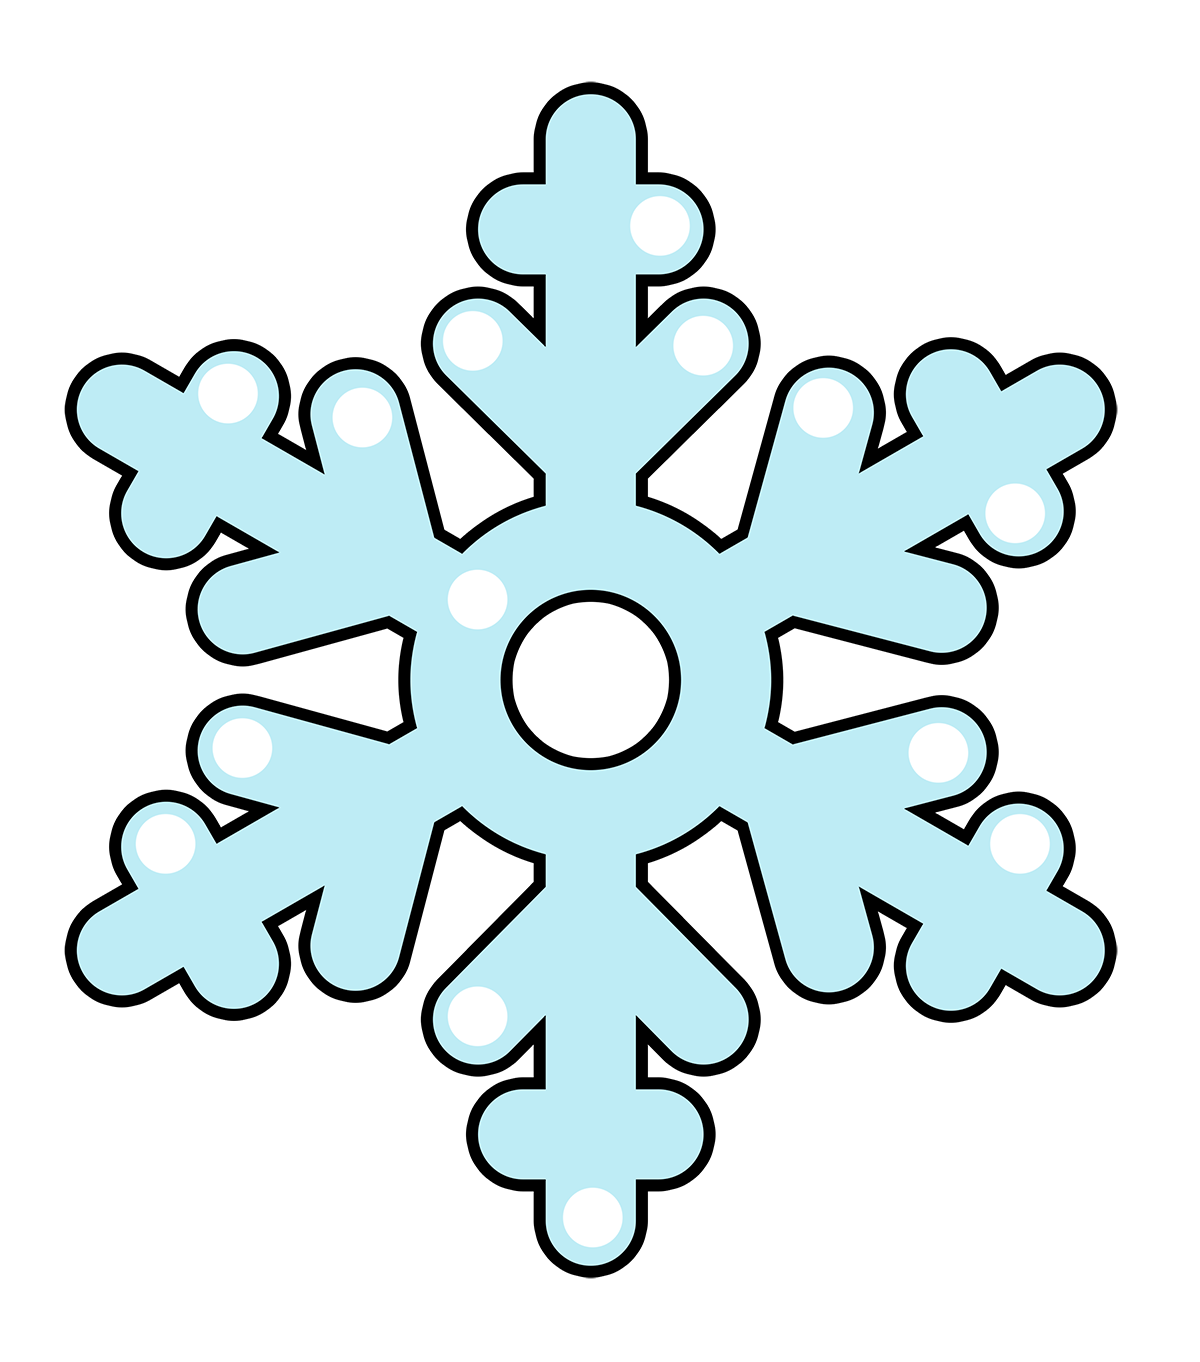 Snowflakes Clip Art Images Free For Commercial Use #h4uMbi ...